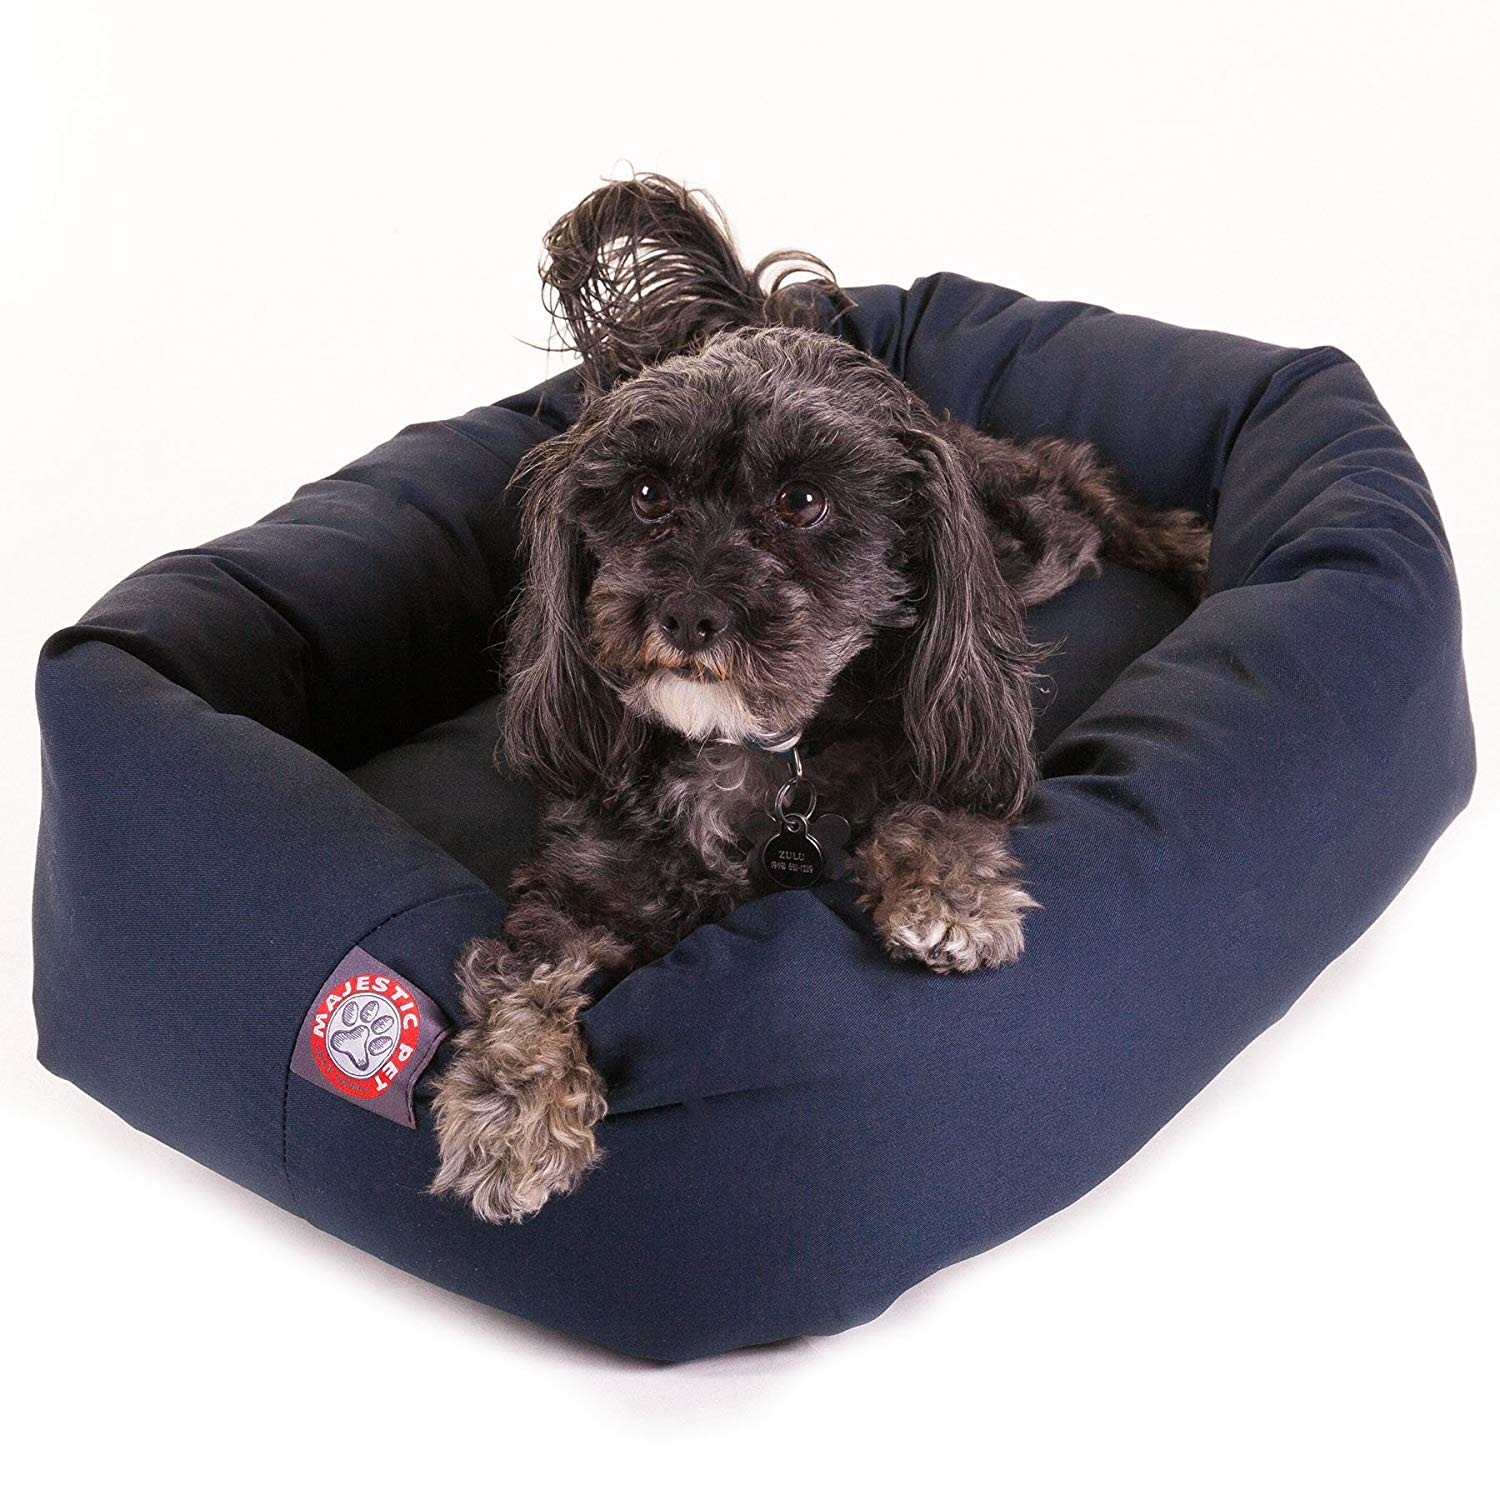 The Best Dog Beds To Help Your Canine Rest Easy